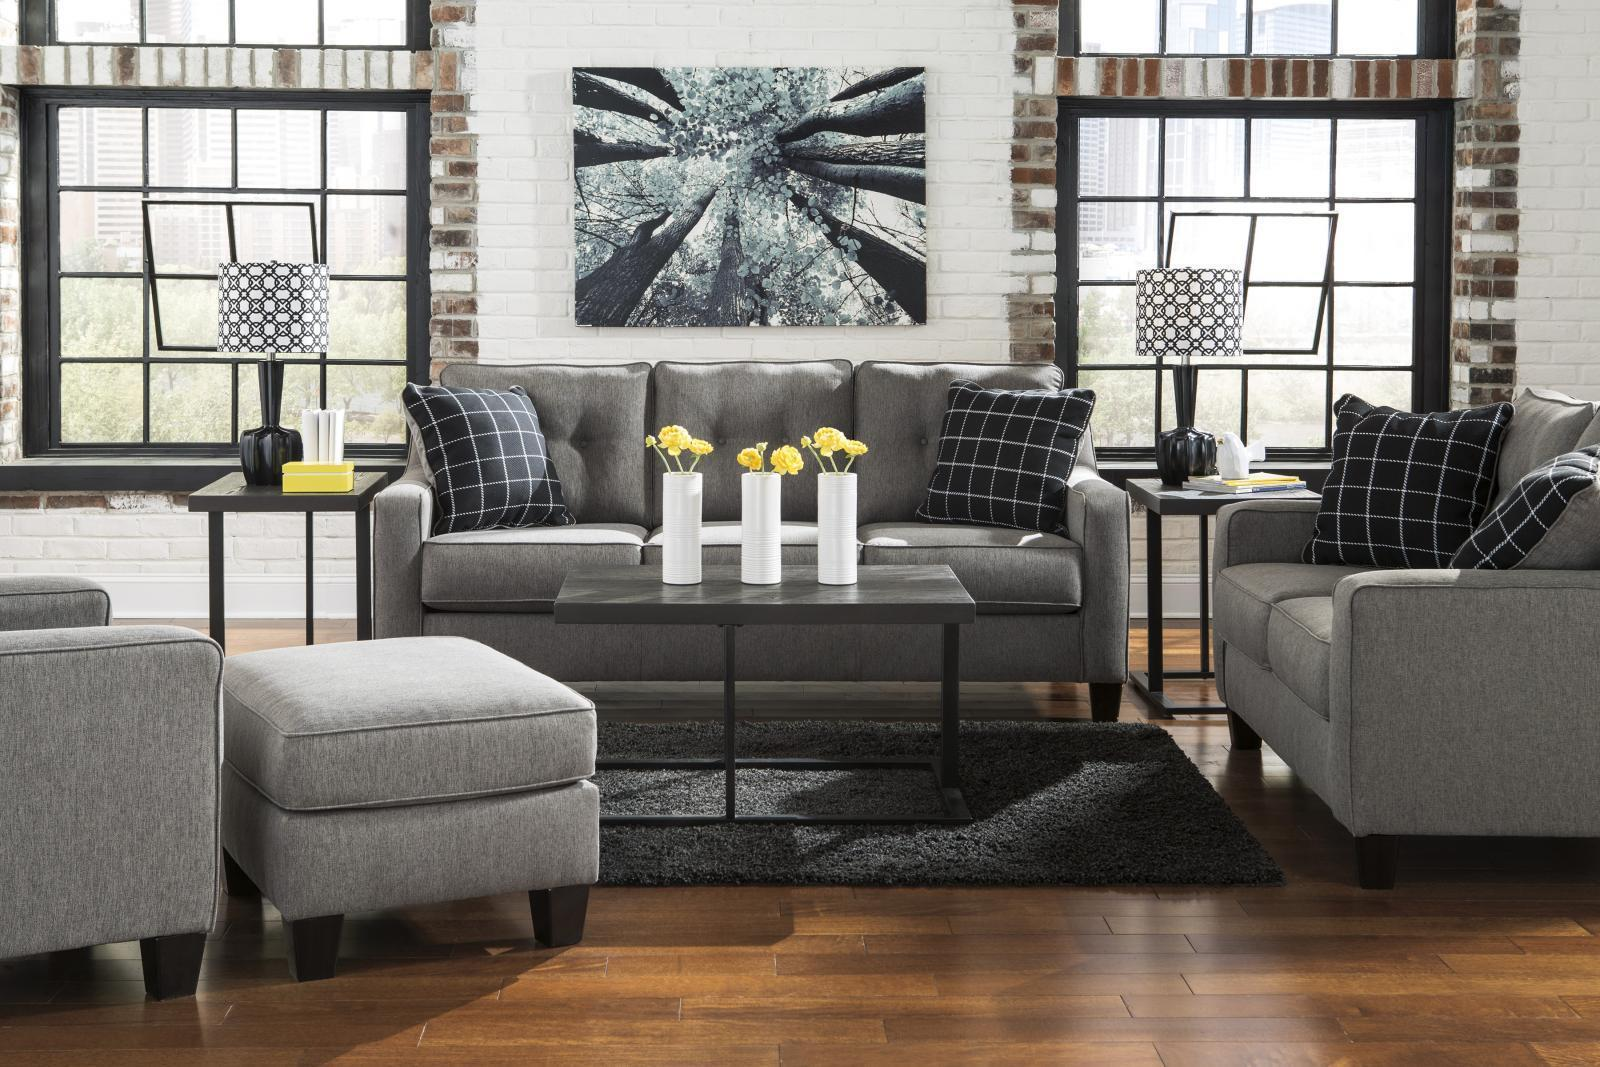 Ashley Brindon Living Room Set 3pcs in Charcoal Upholstery Fabric Contemporary